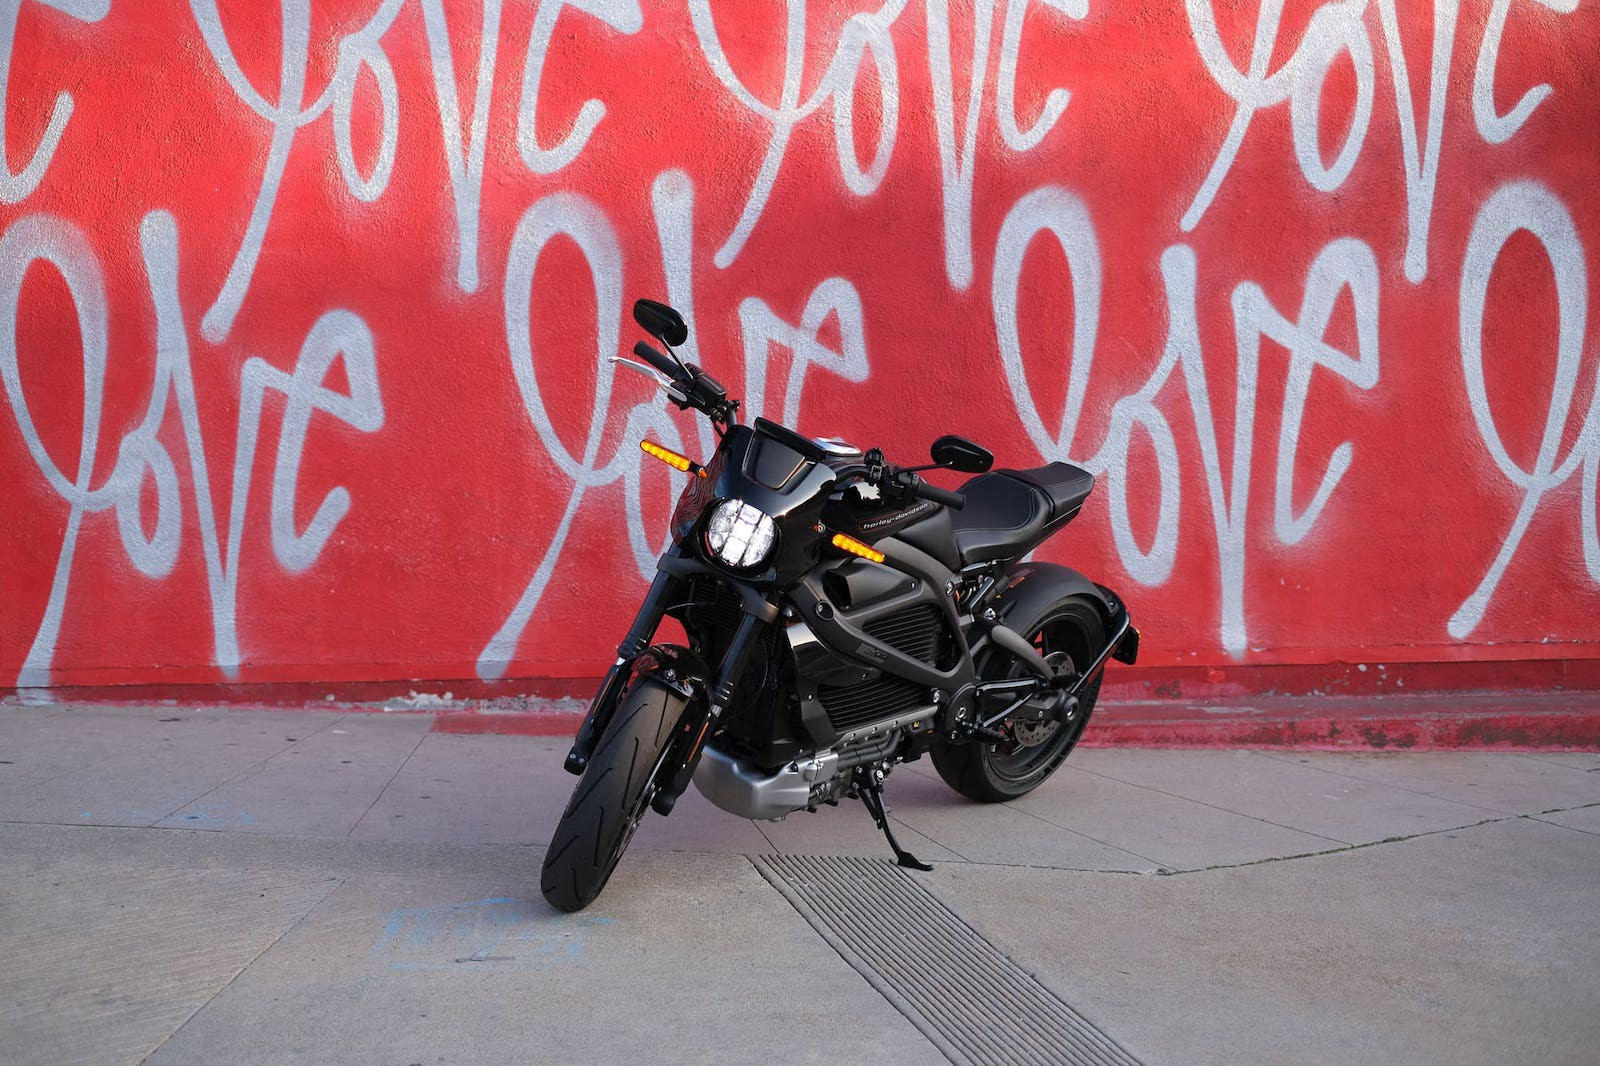 Harley Davidson LiveWire in front of love wall in los angeles